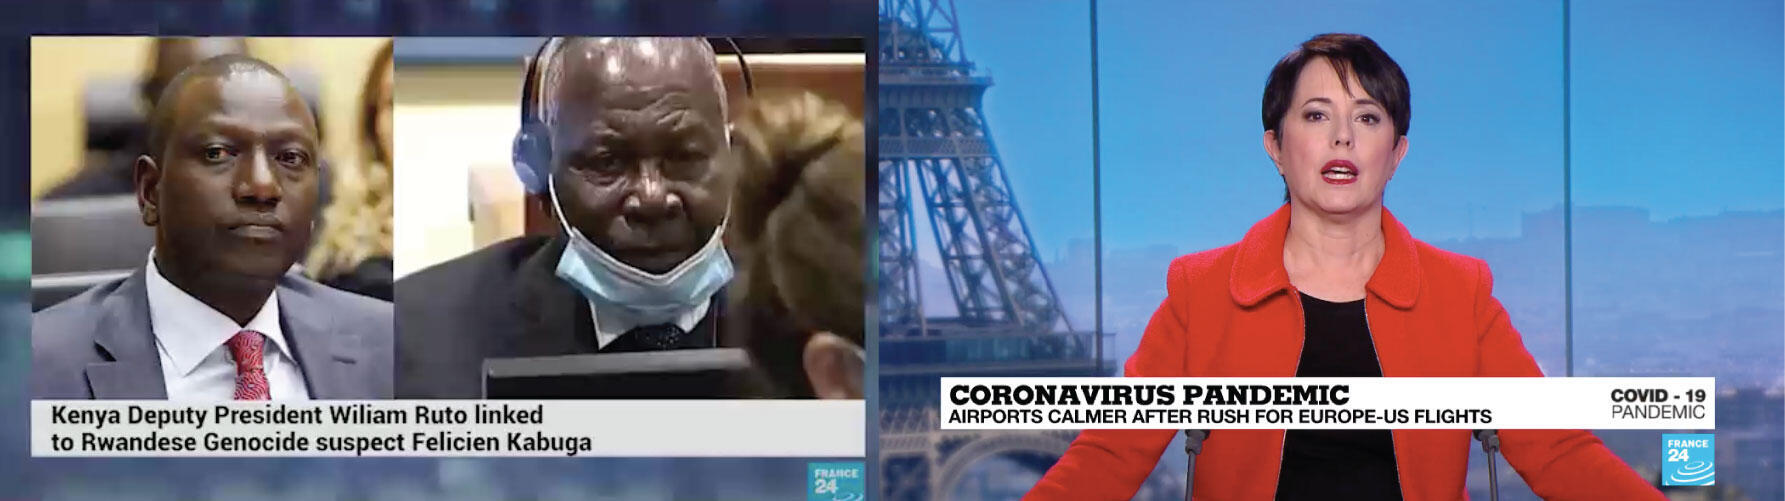 (Left) Screengrab of the fake video edited with France 24 graphics (RIght) Screengrab of a real France 24 video with a different font and graphic style